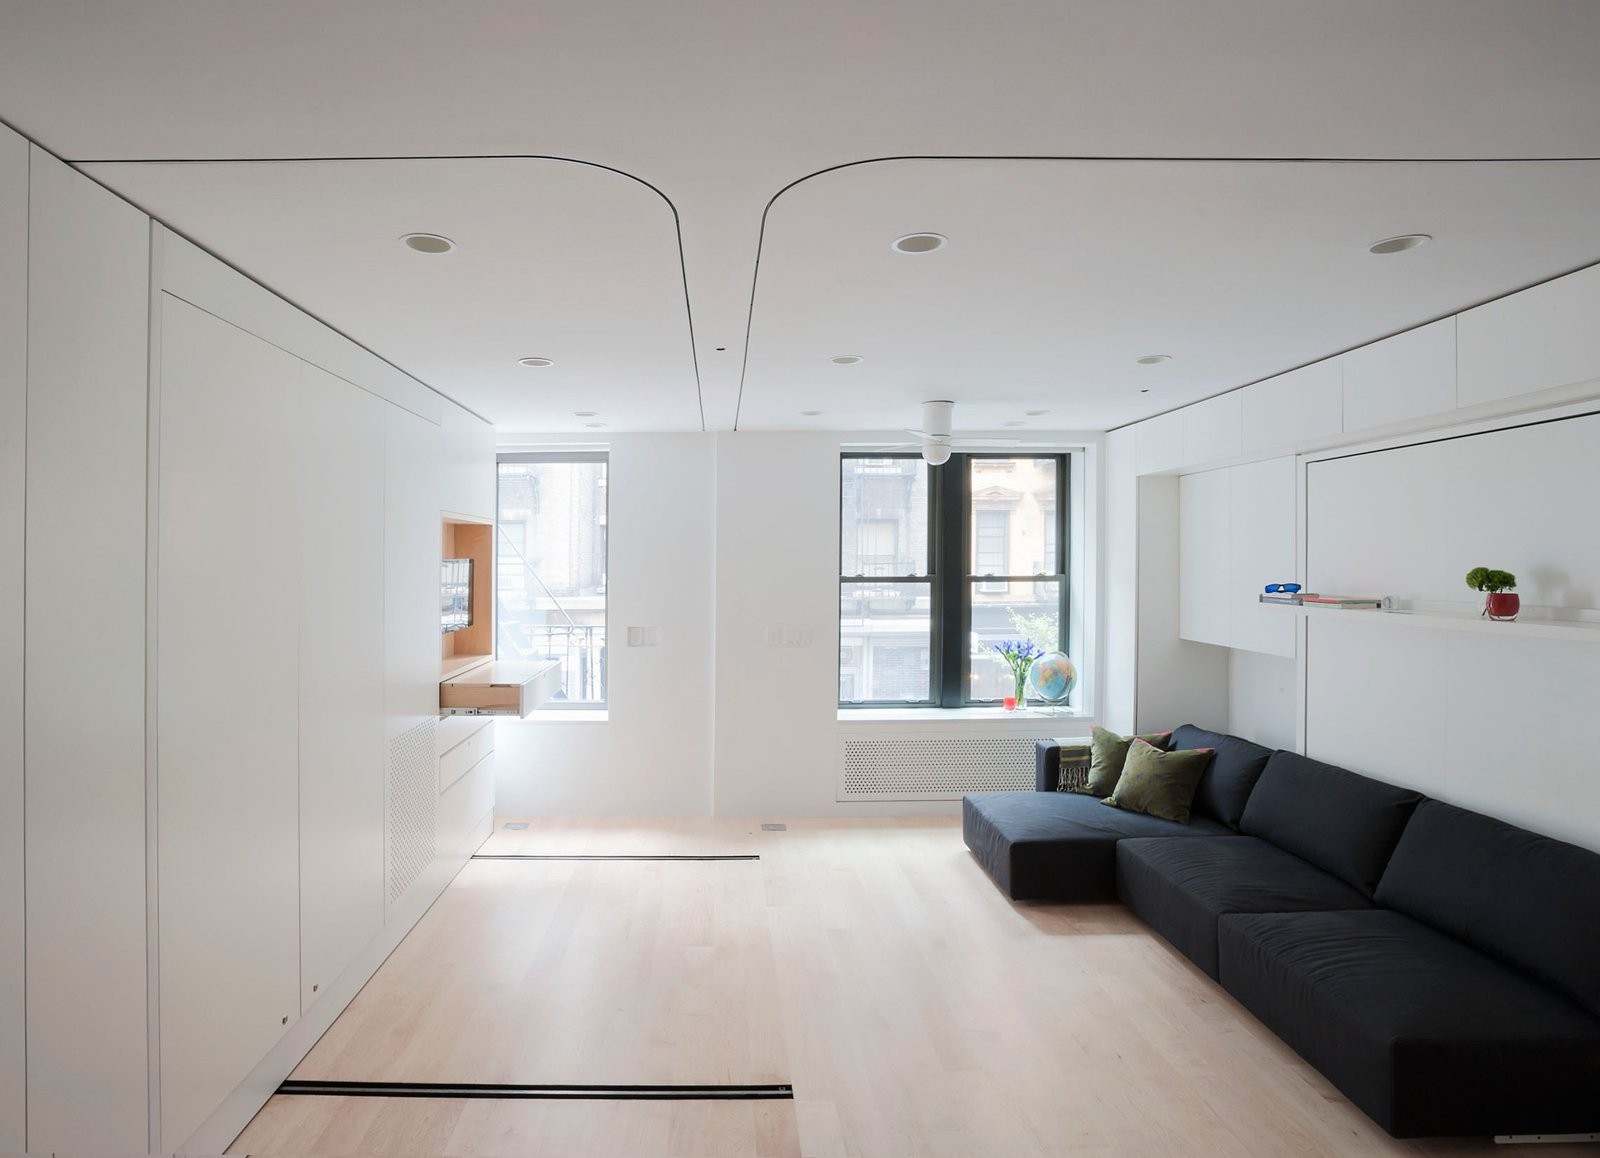 The open layout, maple floors, and white cabinetry make for a bright, airy feel in the 420-square-foot space.  Photo 1 of 12 in Small Space Living by LifeEdited